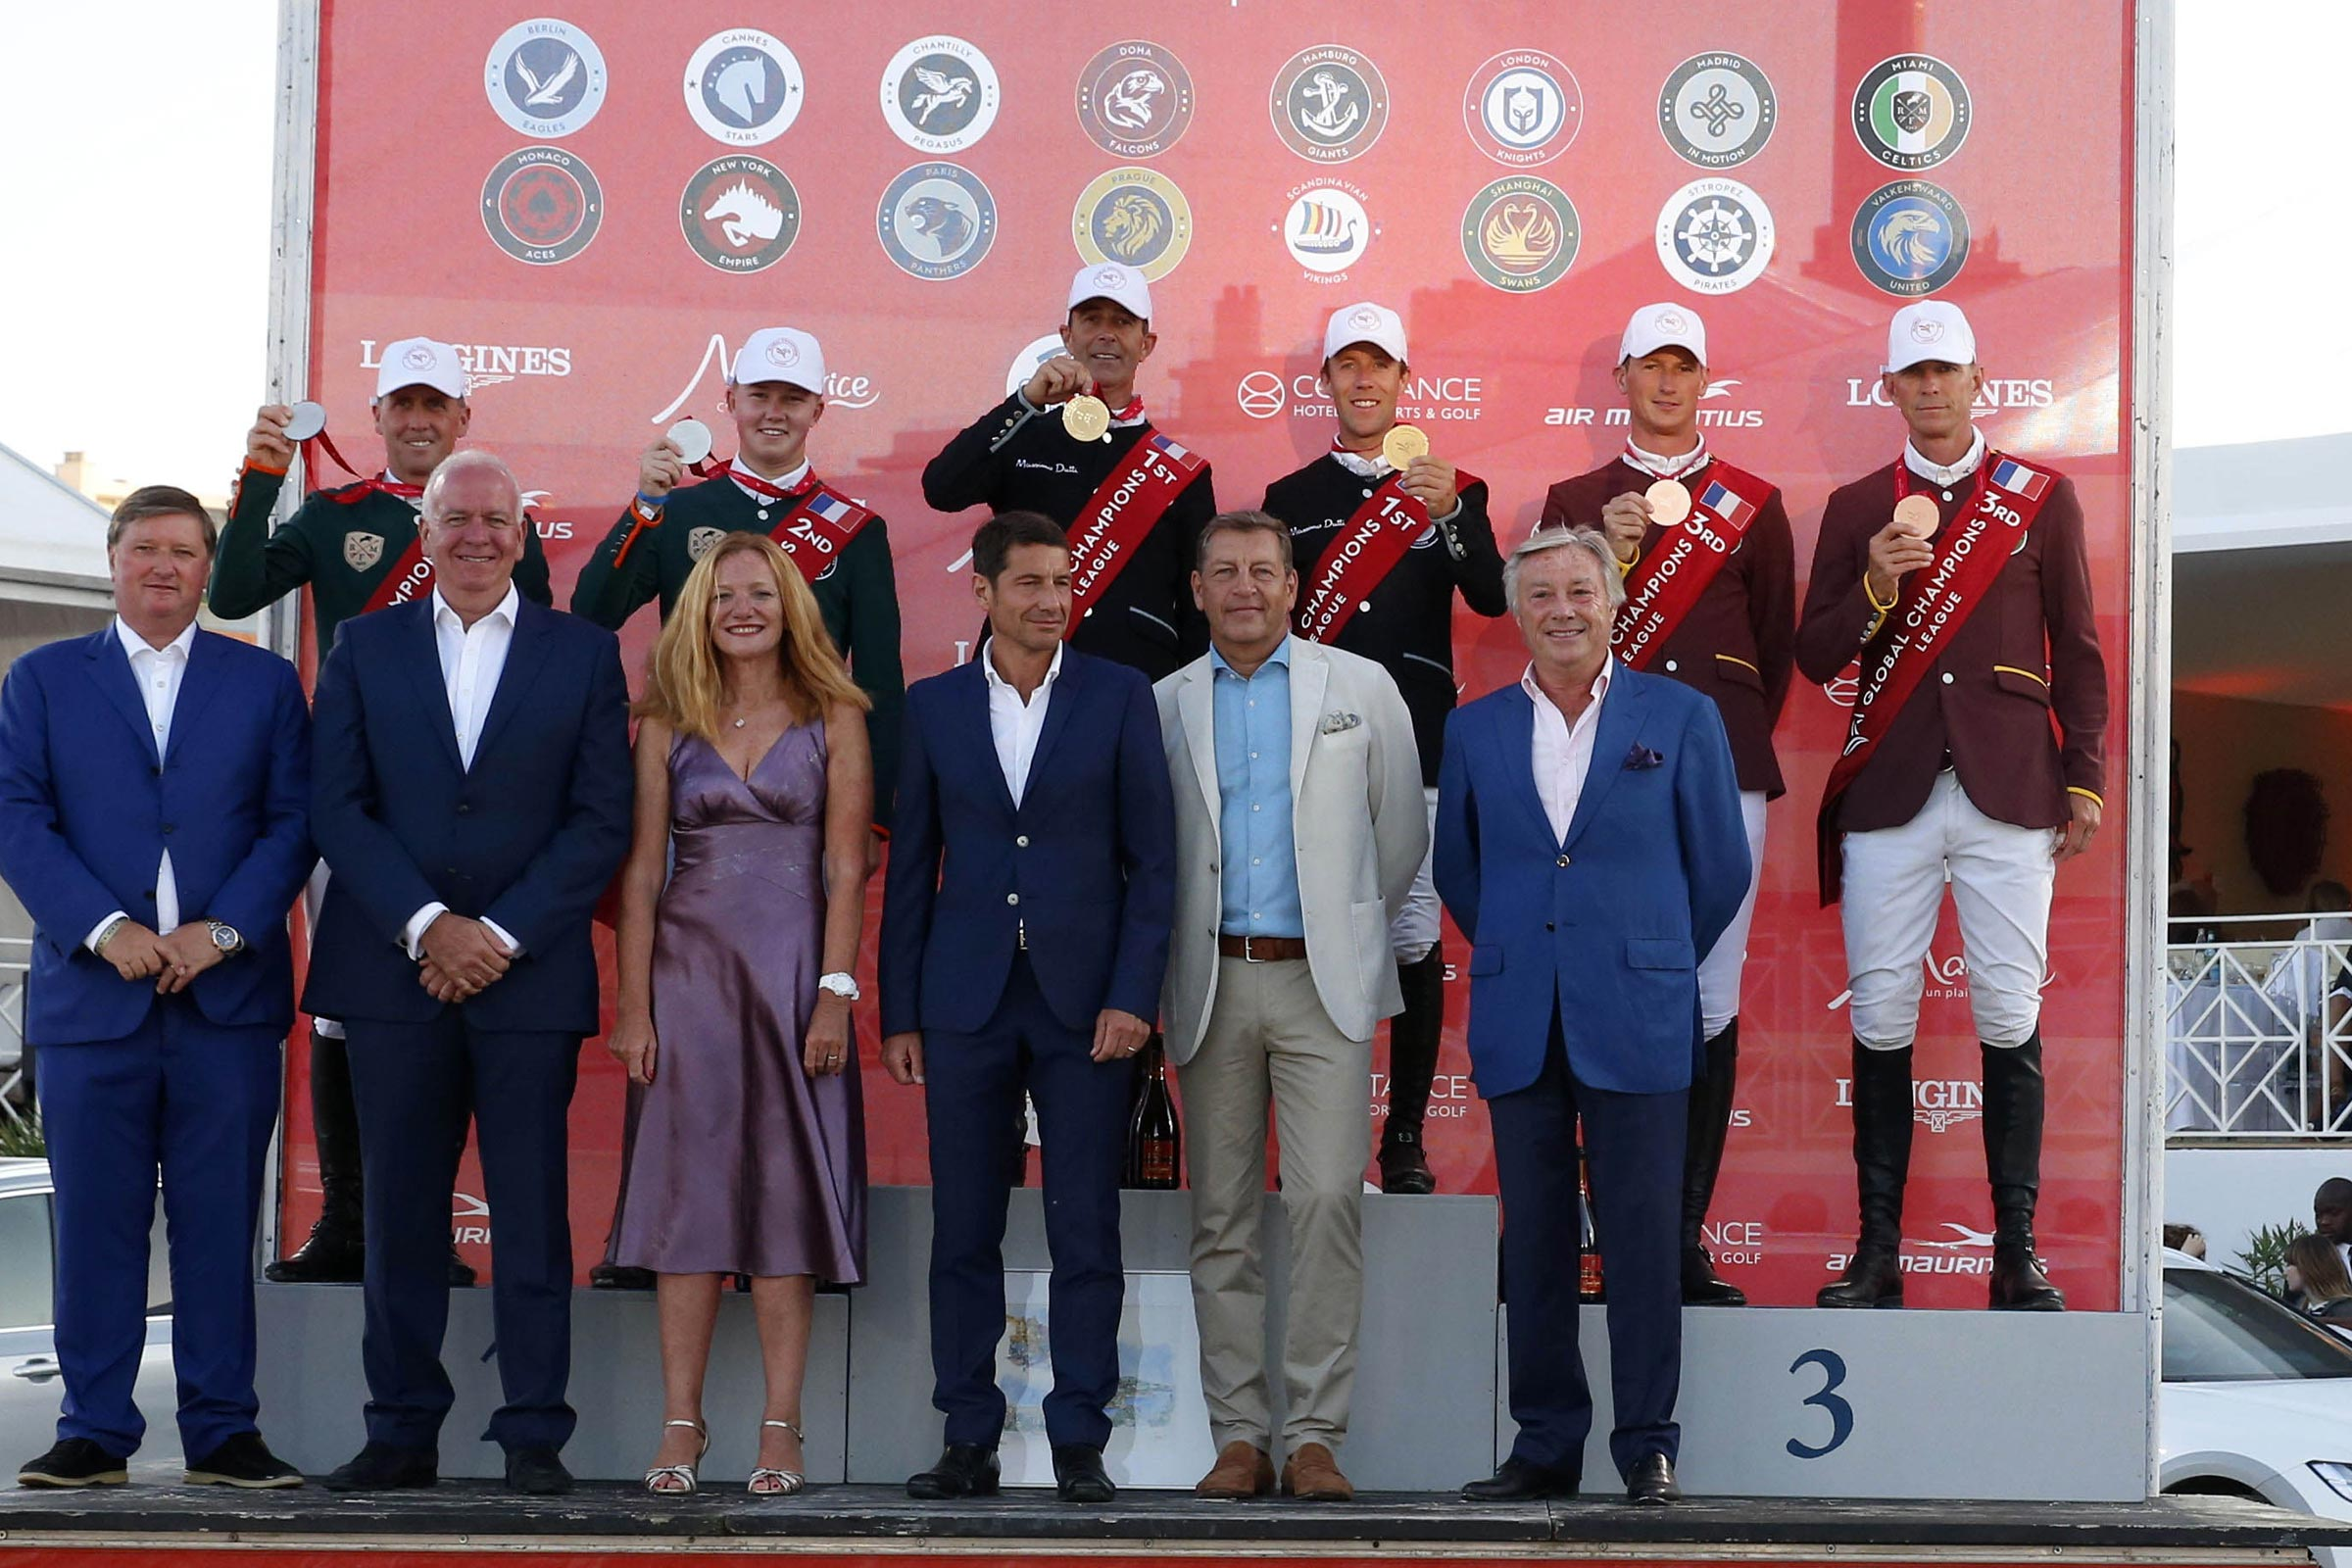 The Podium of GCL of Cannes - 1st Madrid in Motion, 2nd Miami Celtics, 3rd Shanghai Swans ph.Stefano Grasso/GCL CANNES 2019 DOWNLOAD